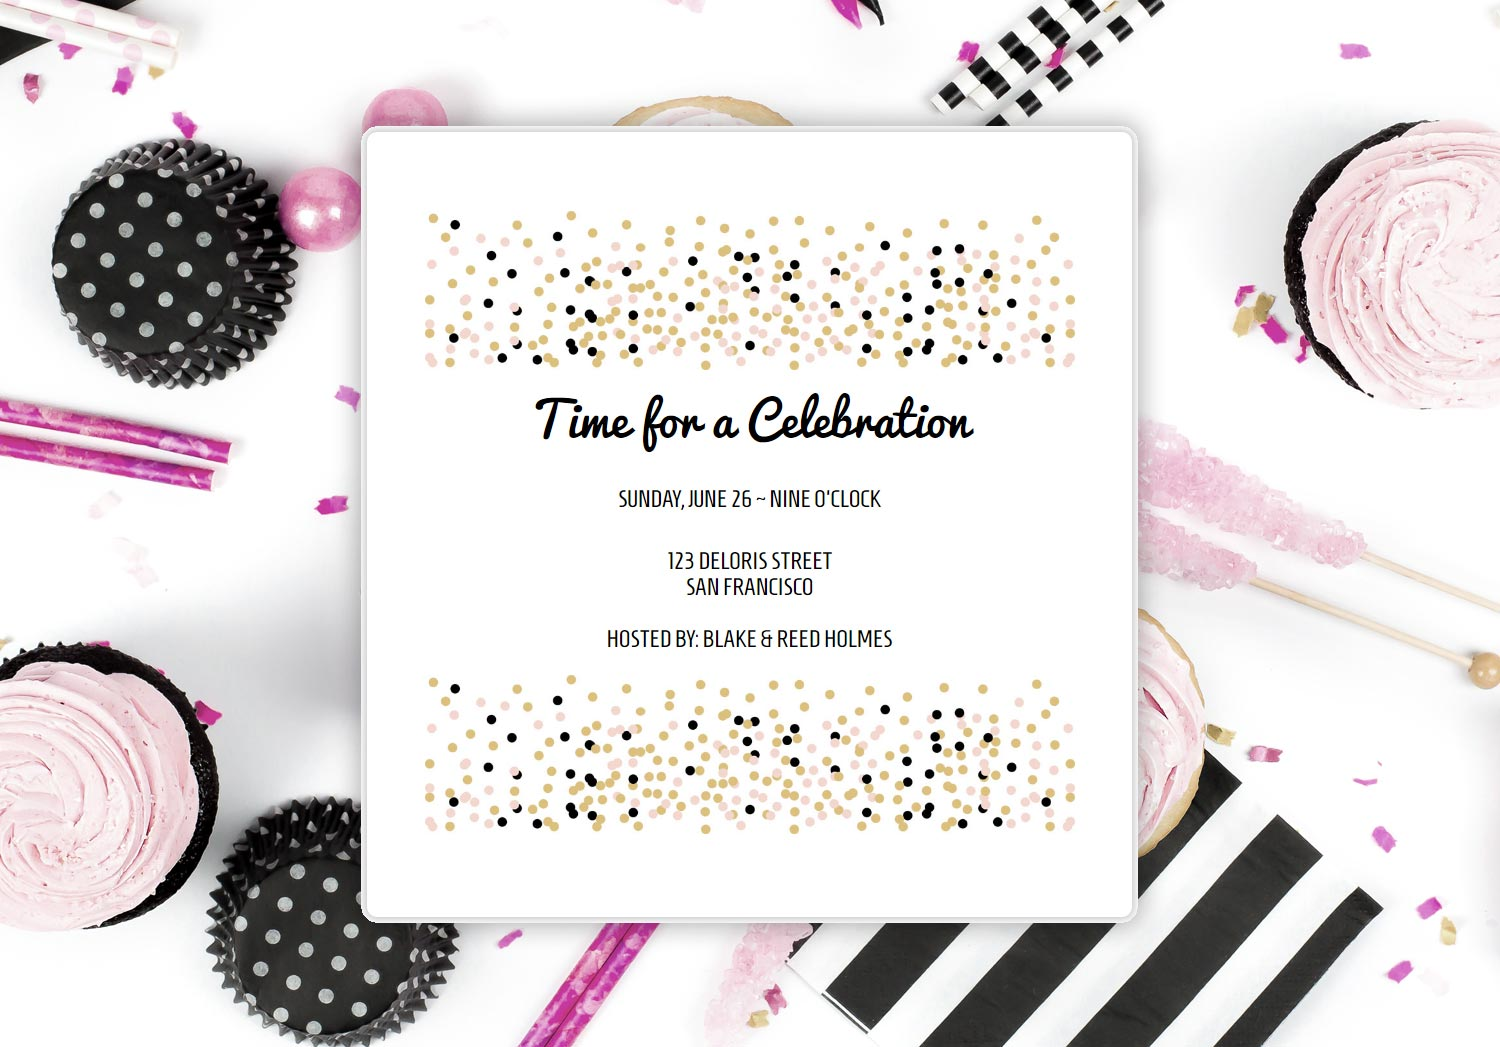 When To Send Party Invitations